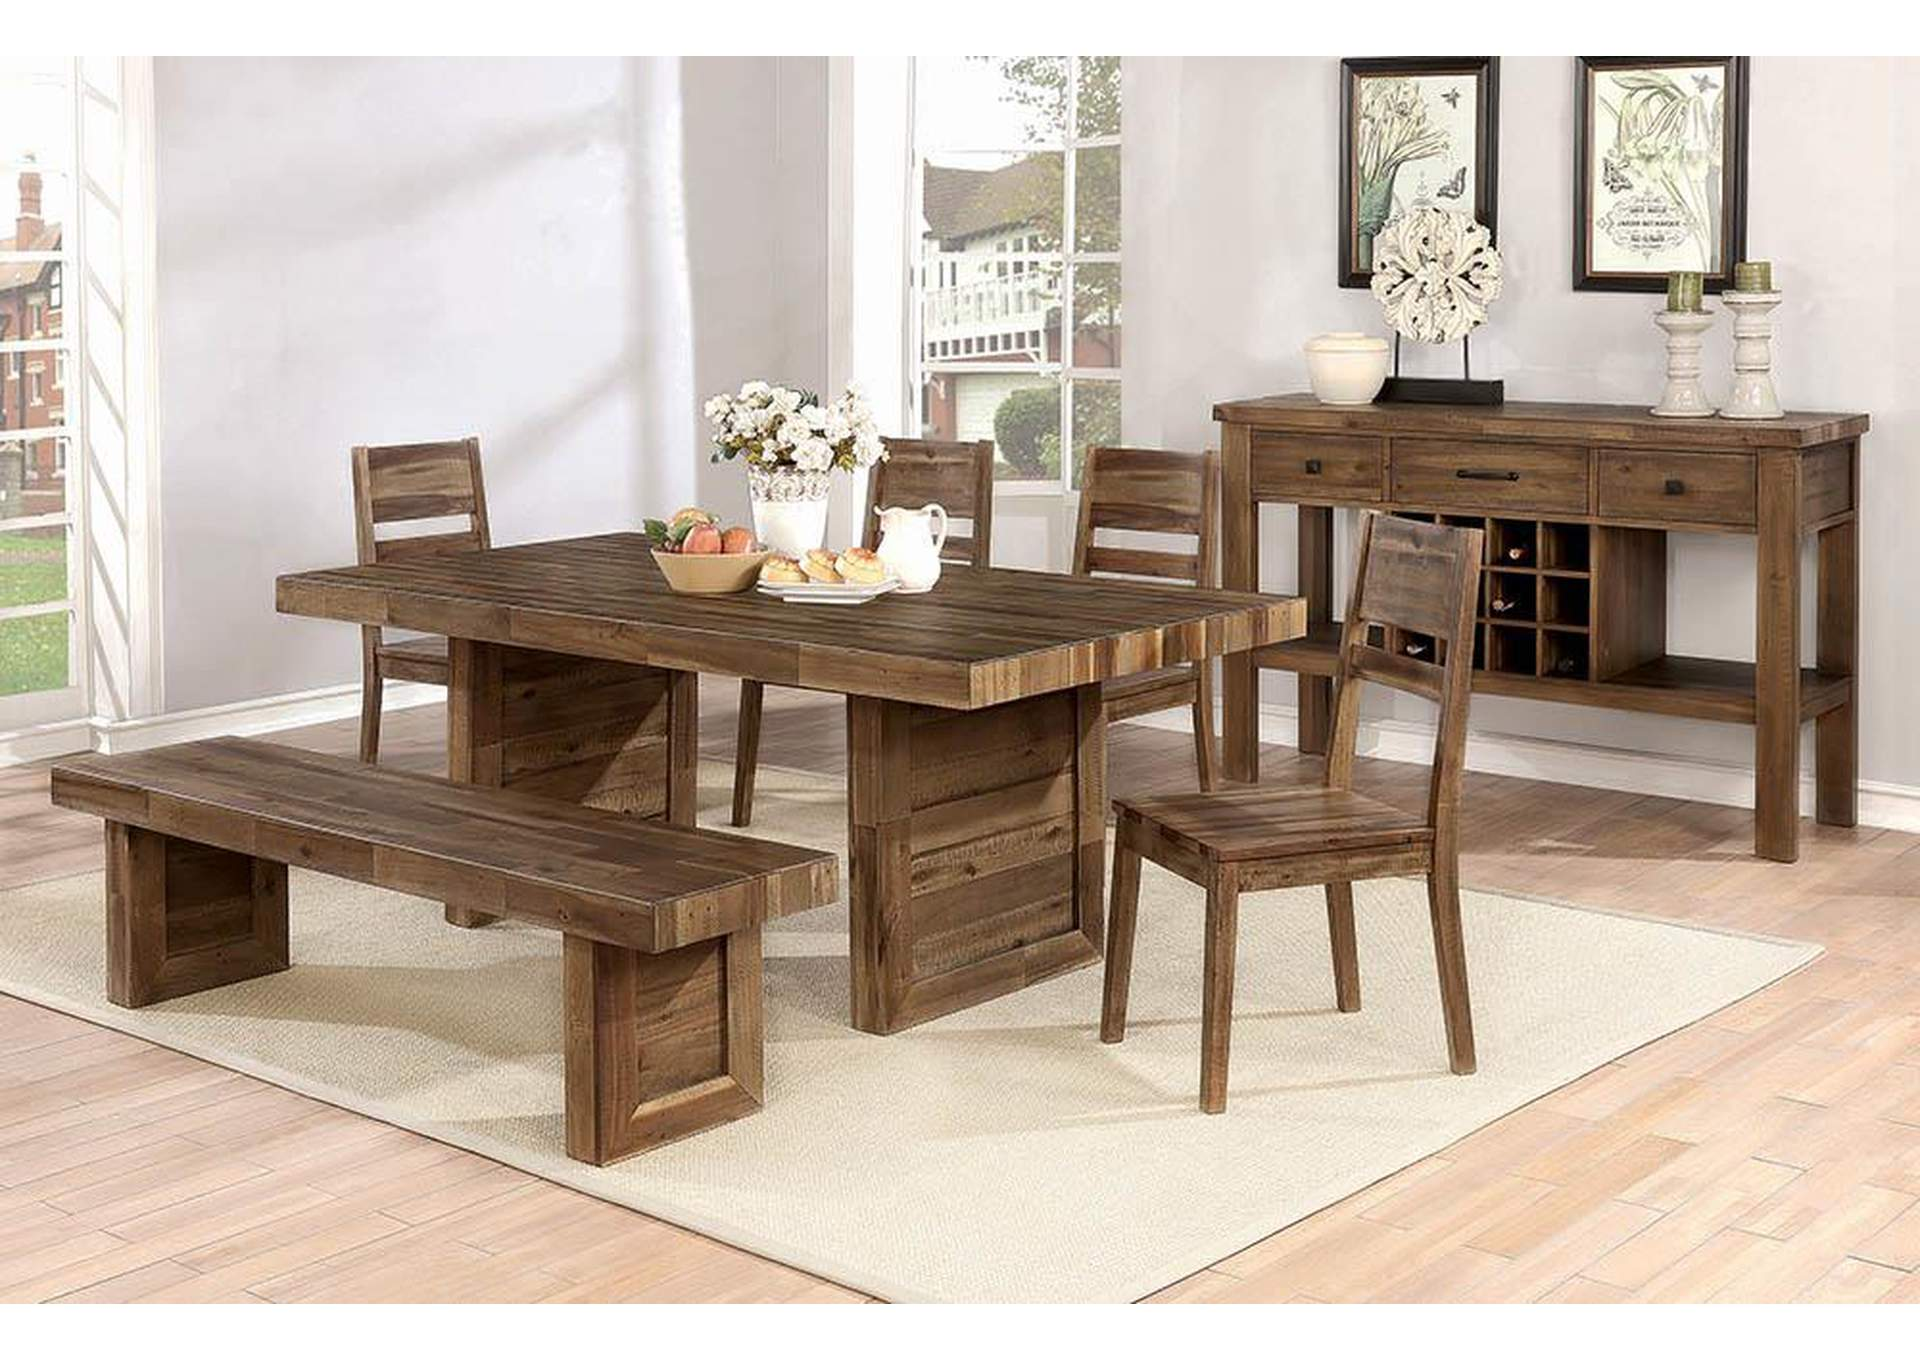 Tucson Rustic Varied Natural Server,Coaster Furniture